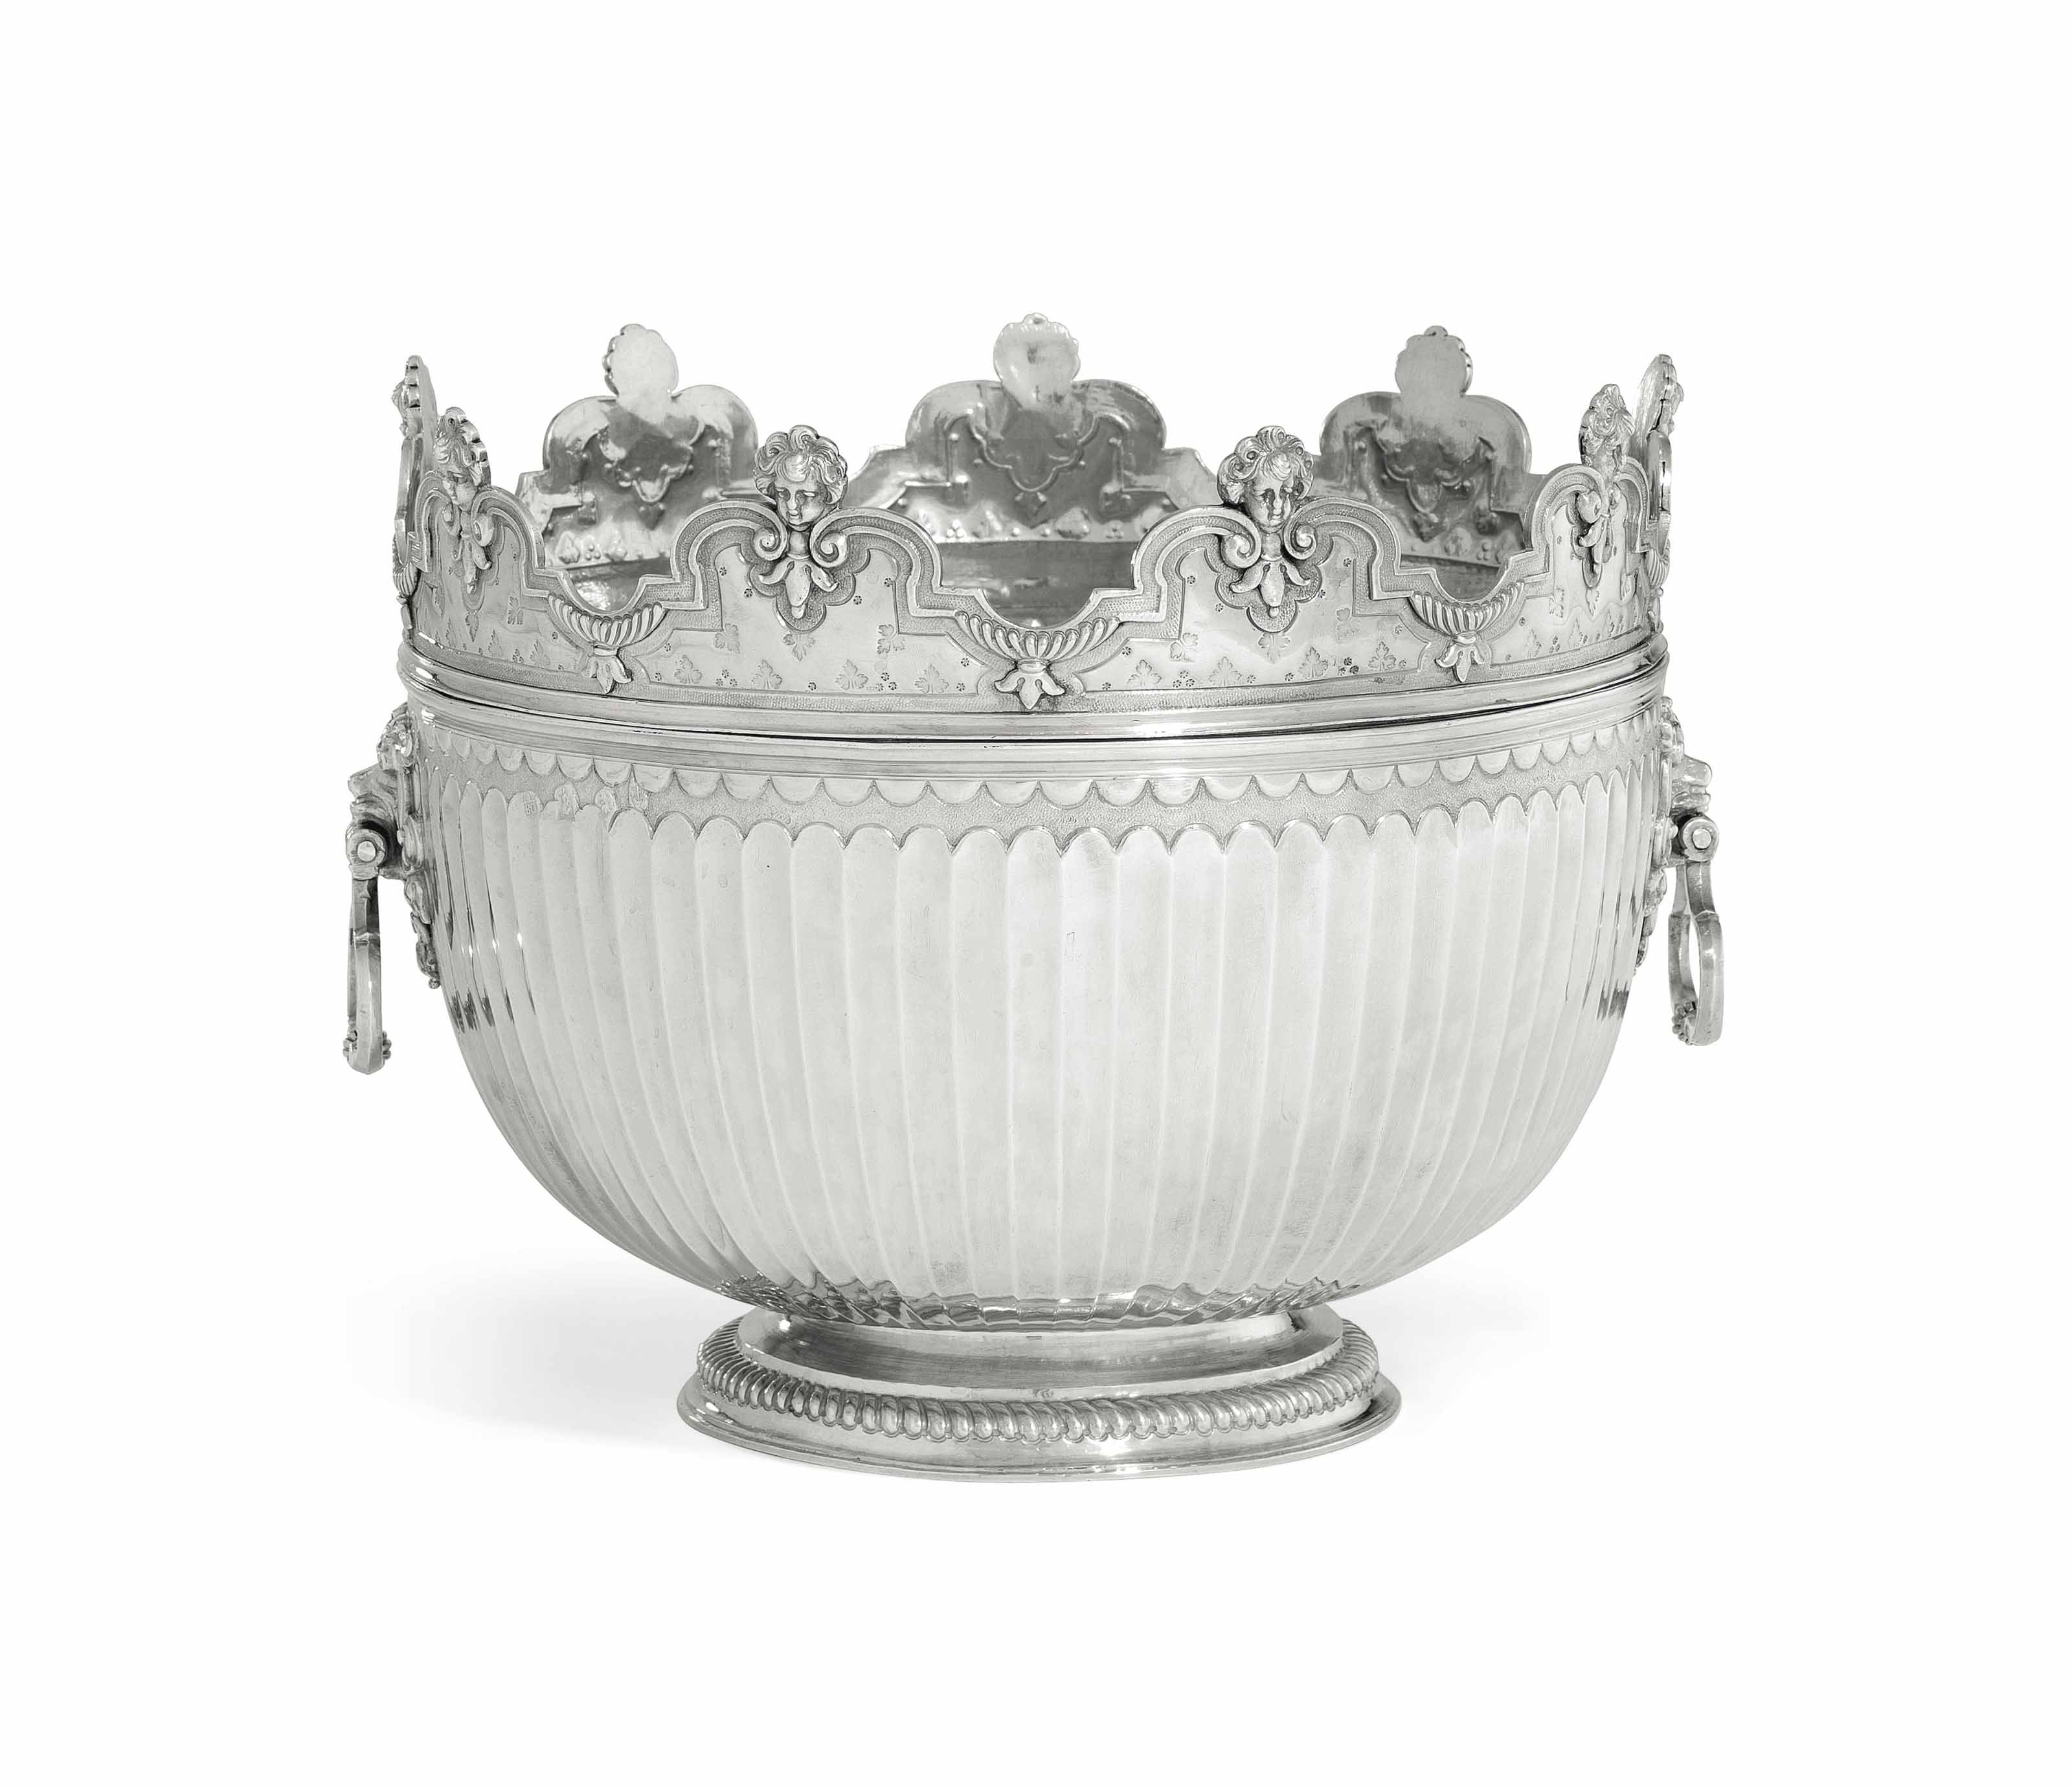 A WILLIAM III SILVER MONTEITH